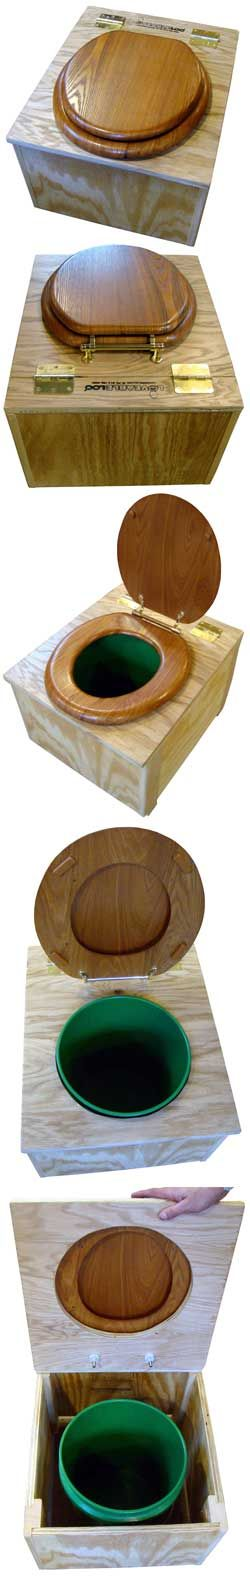 LOVEABLE LOO Eco Toilet, Fully Assembled and Finished | This is an eco-potty for permanent indoor (or outdoor) household use, office, bedroom, camping, shop, garage, barn, or emergency toilet use. No water, electricity, venting, plumbing or chemicals required. Odor-free when properly managed. No urine separation required.